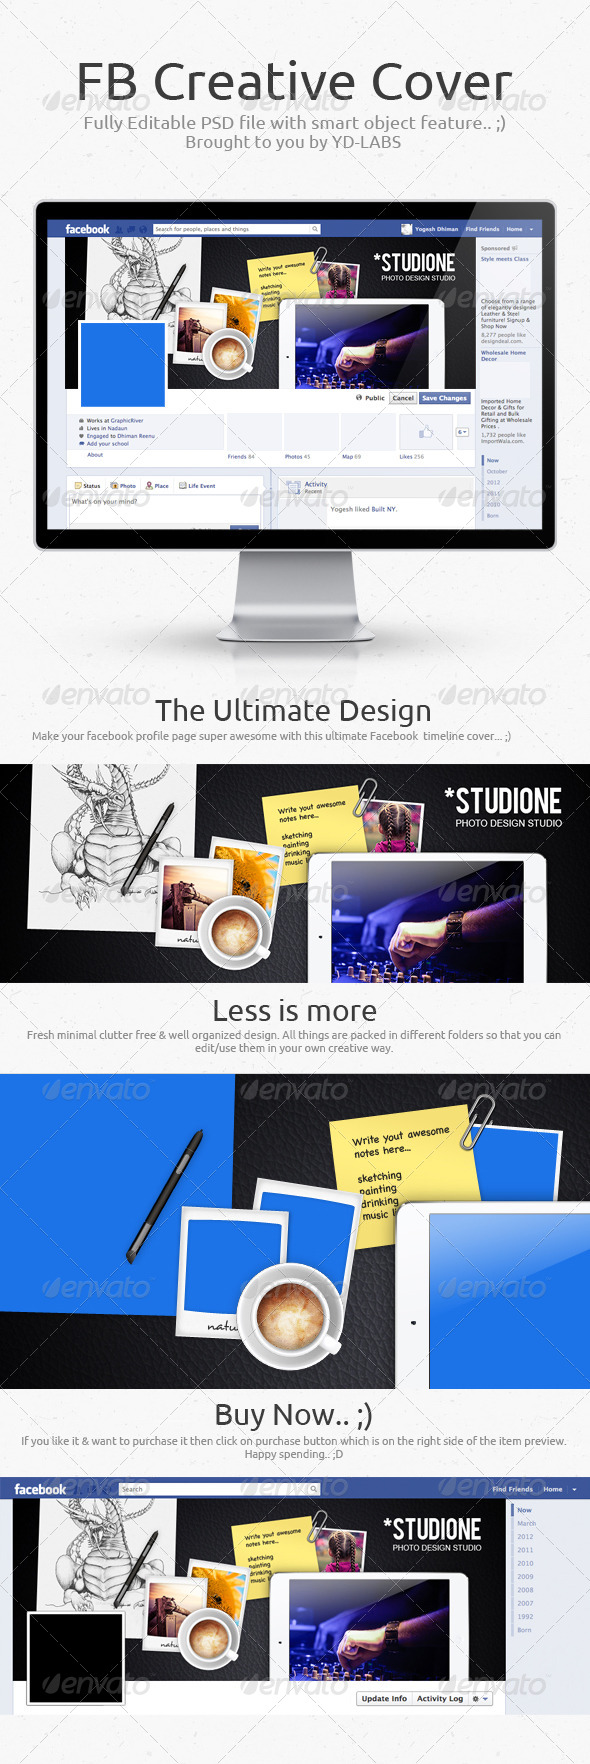 GraphicRiver FB Creative Cover 6973865